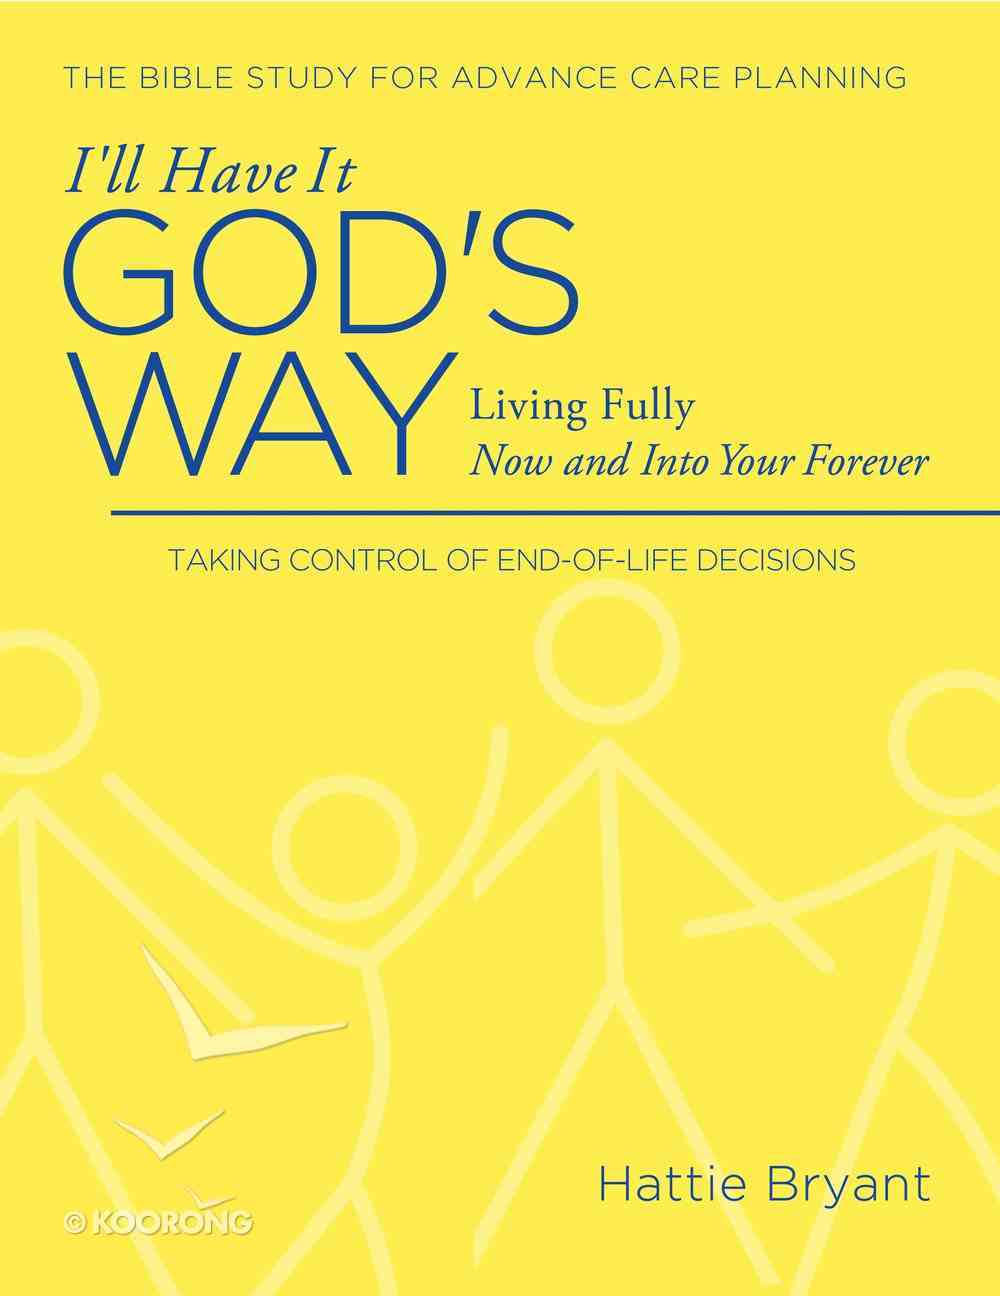 I'll Have It God's Way: Fully Living All the Way to Heaven Paperback